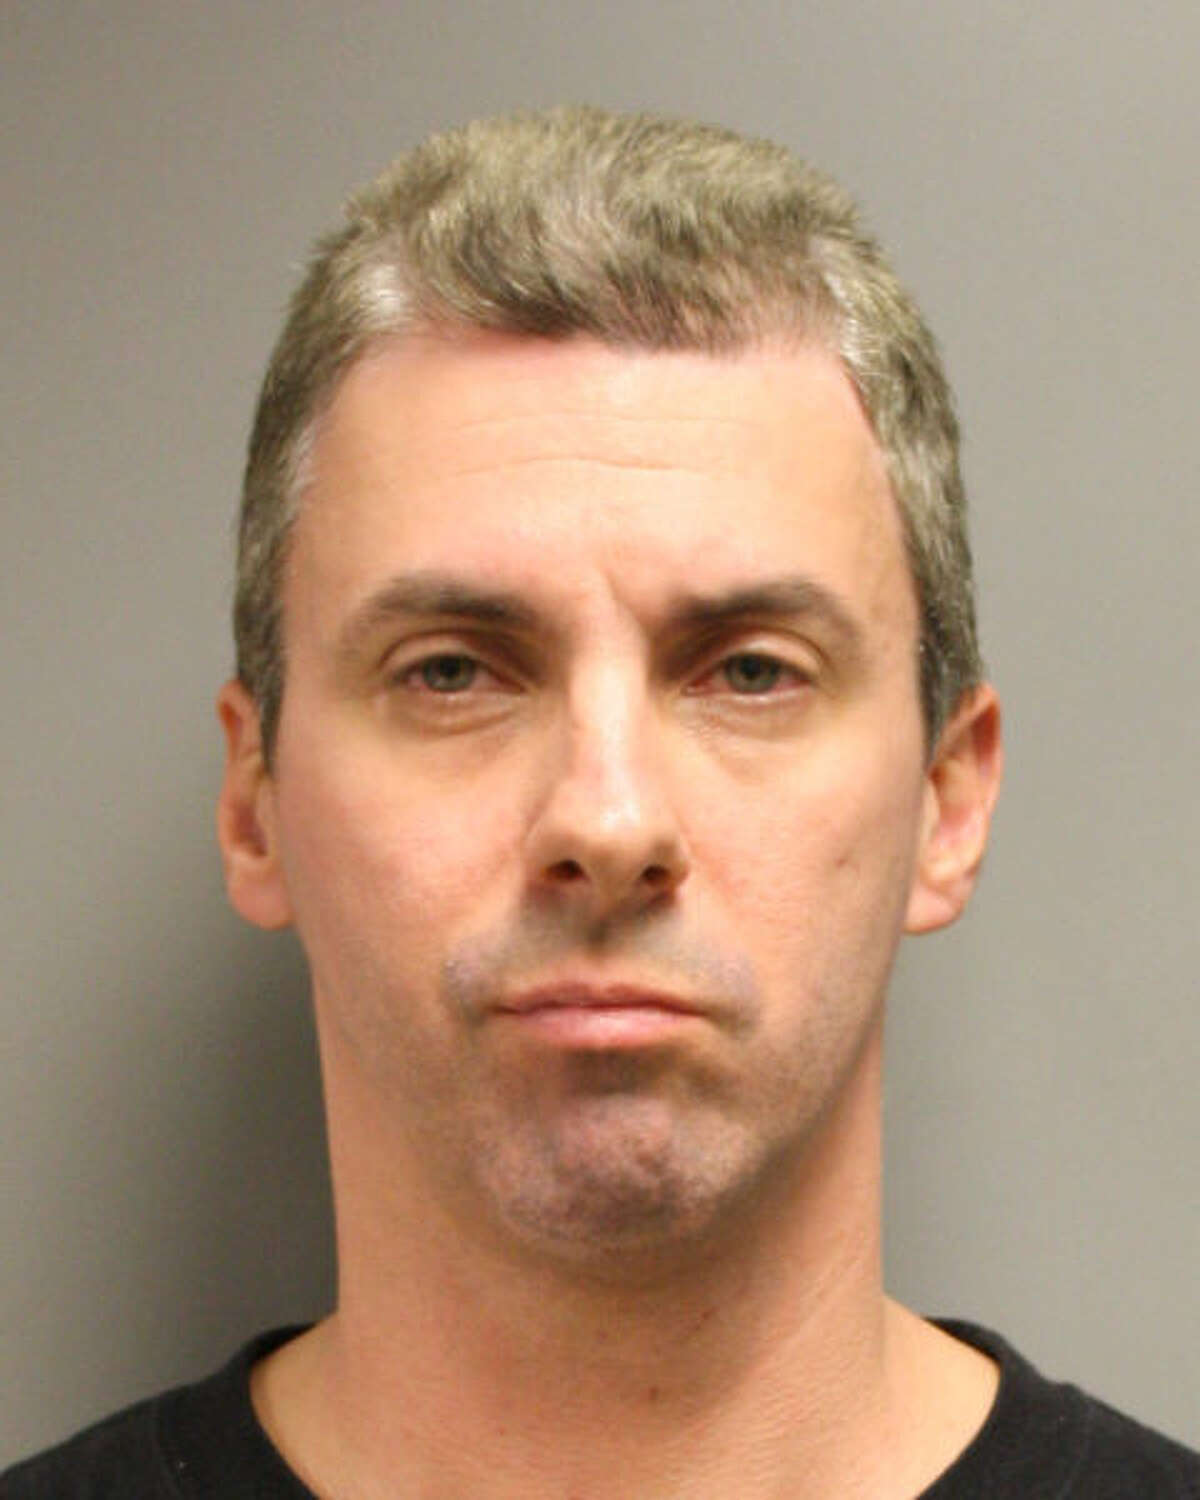 Robert James Talbot Jr, 42, is accused by federal authorities in Houston of plotting to blow up government buildings and kill police officers as part of the American Insurgent Movement.